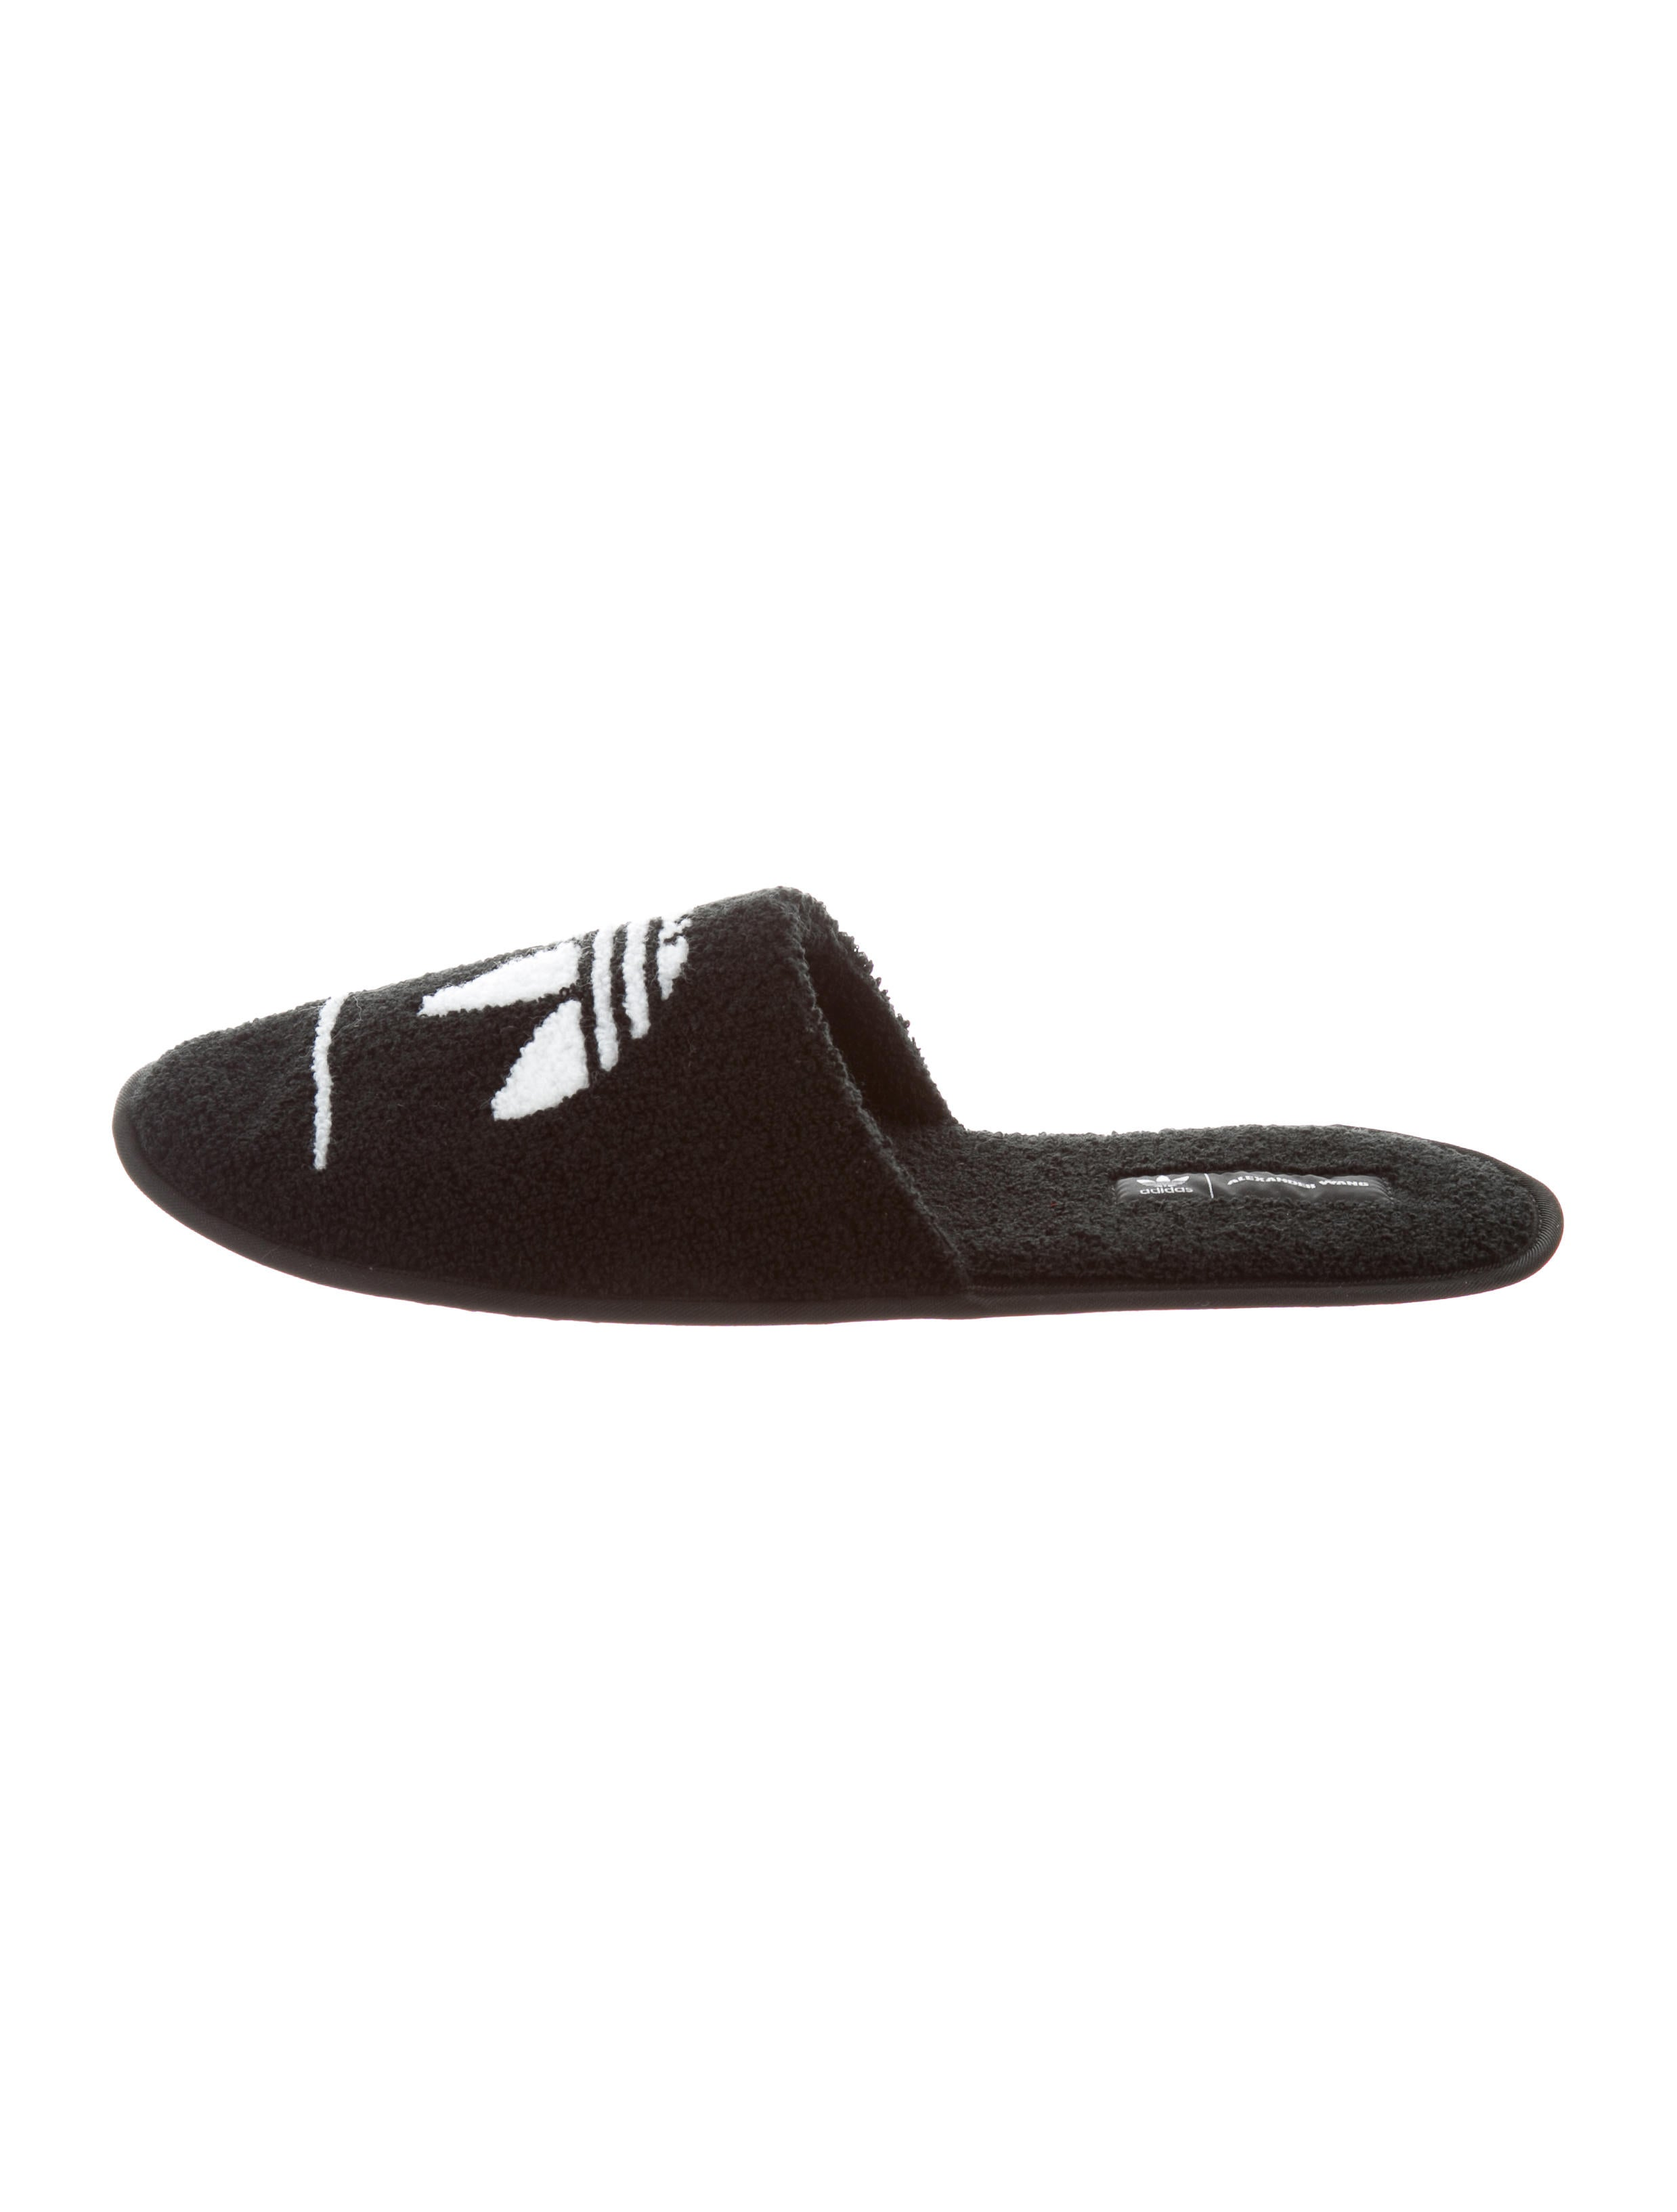 cheapest price sale online sale sneakernews Alexander Wang x Adidas Logo Slide Slippers w/ Tags UlLIneO